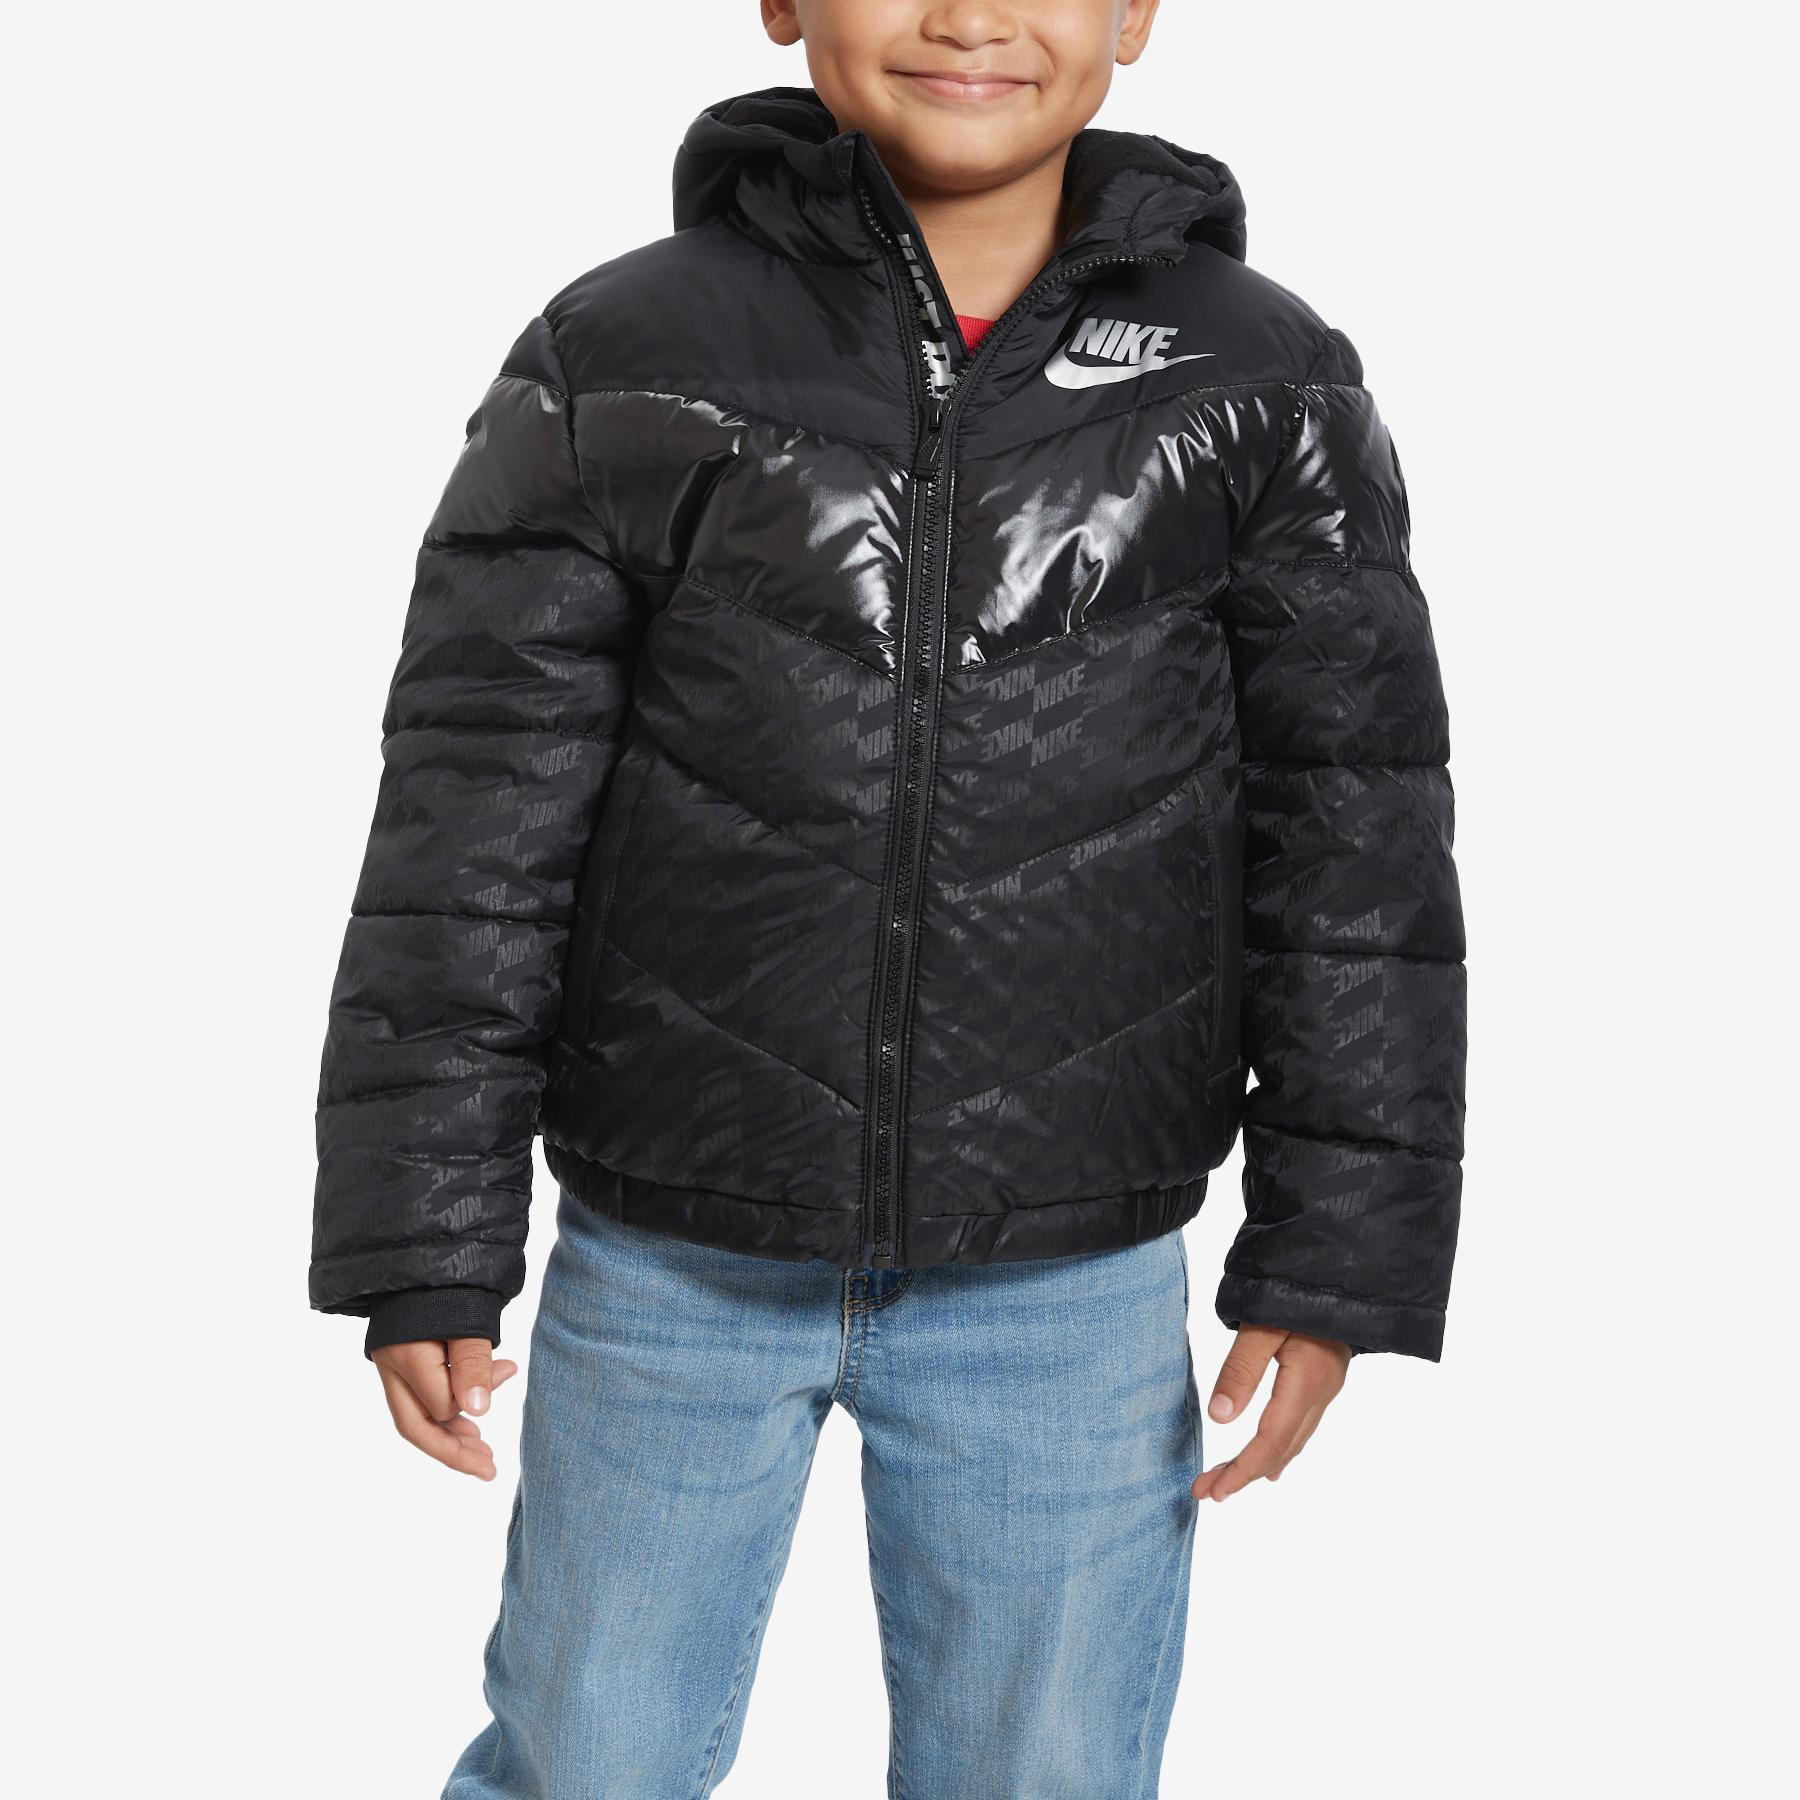 Boy's Preschool Color- Block Puffer Jacket